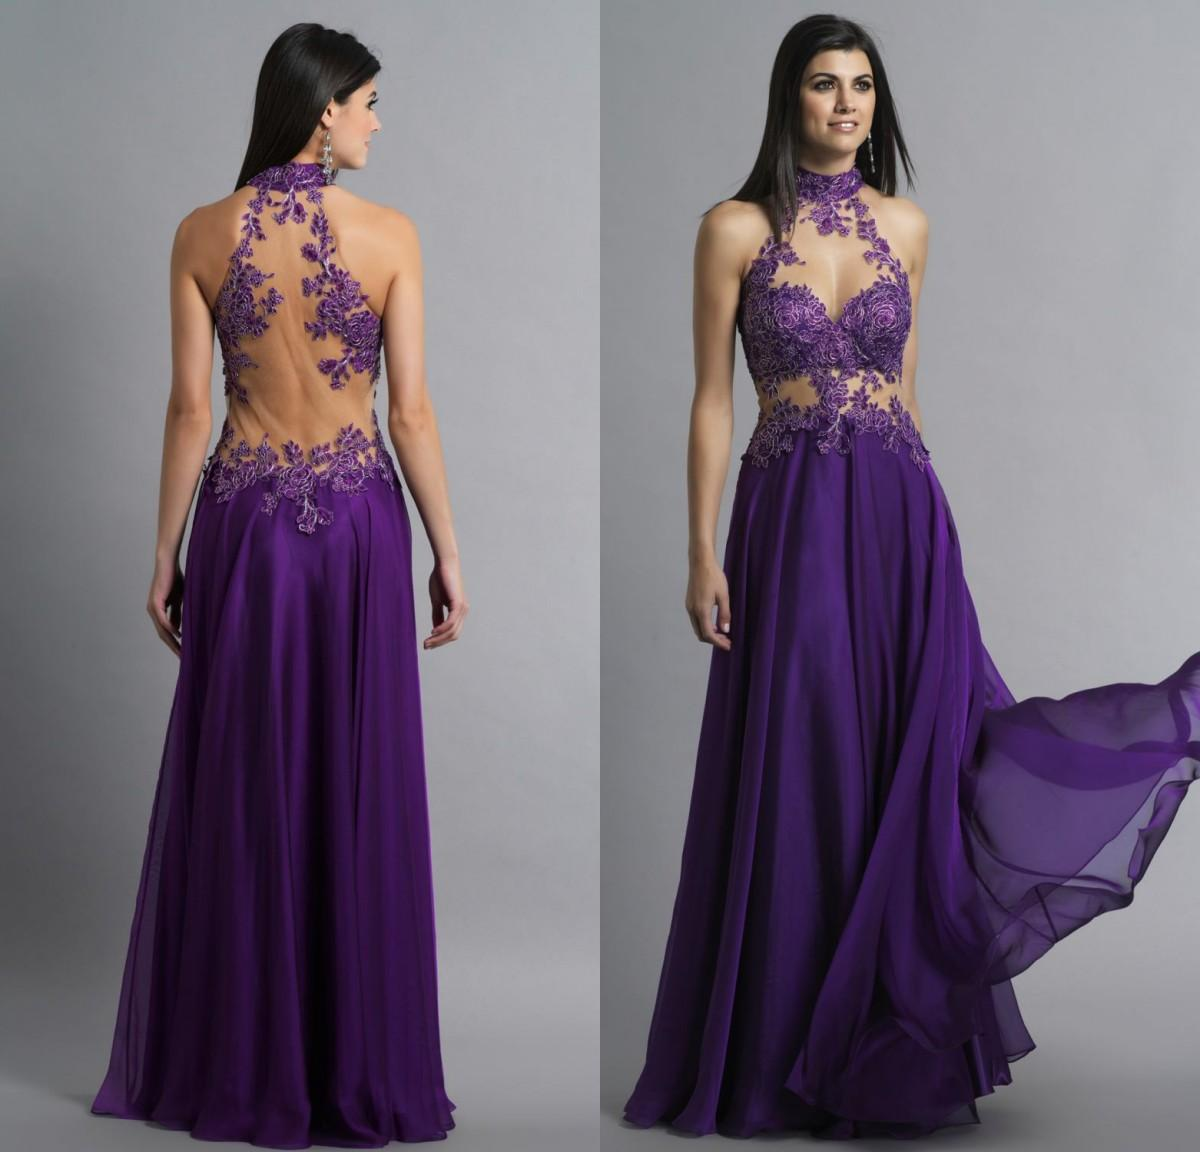 Prom Dress Patterns With Sleeves  The Story Of Prom Dress